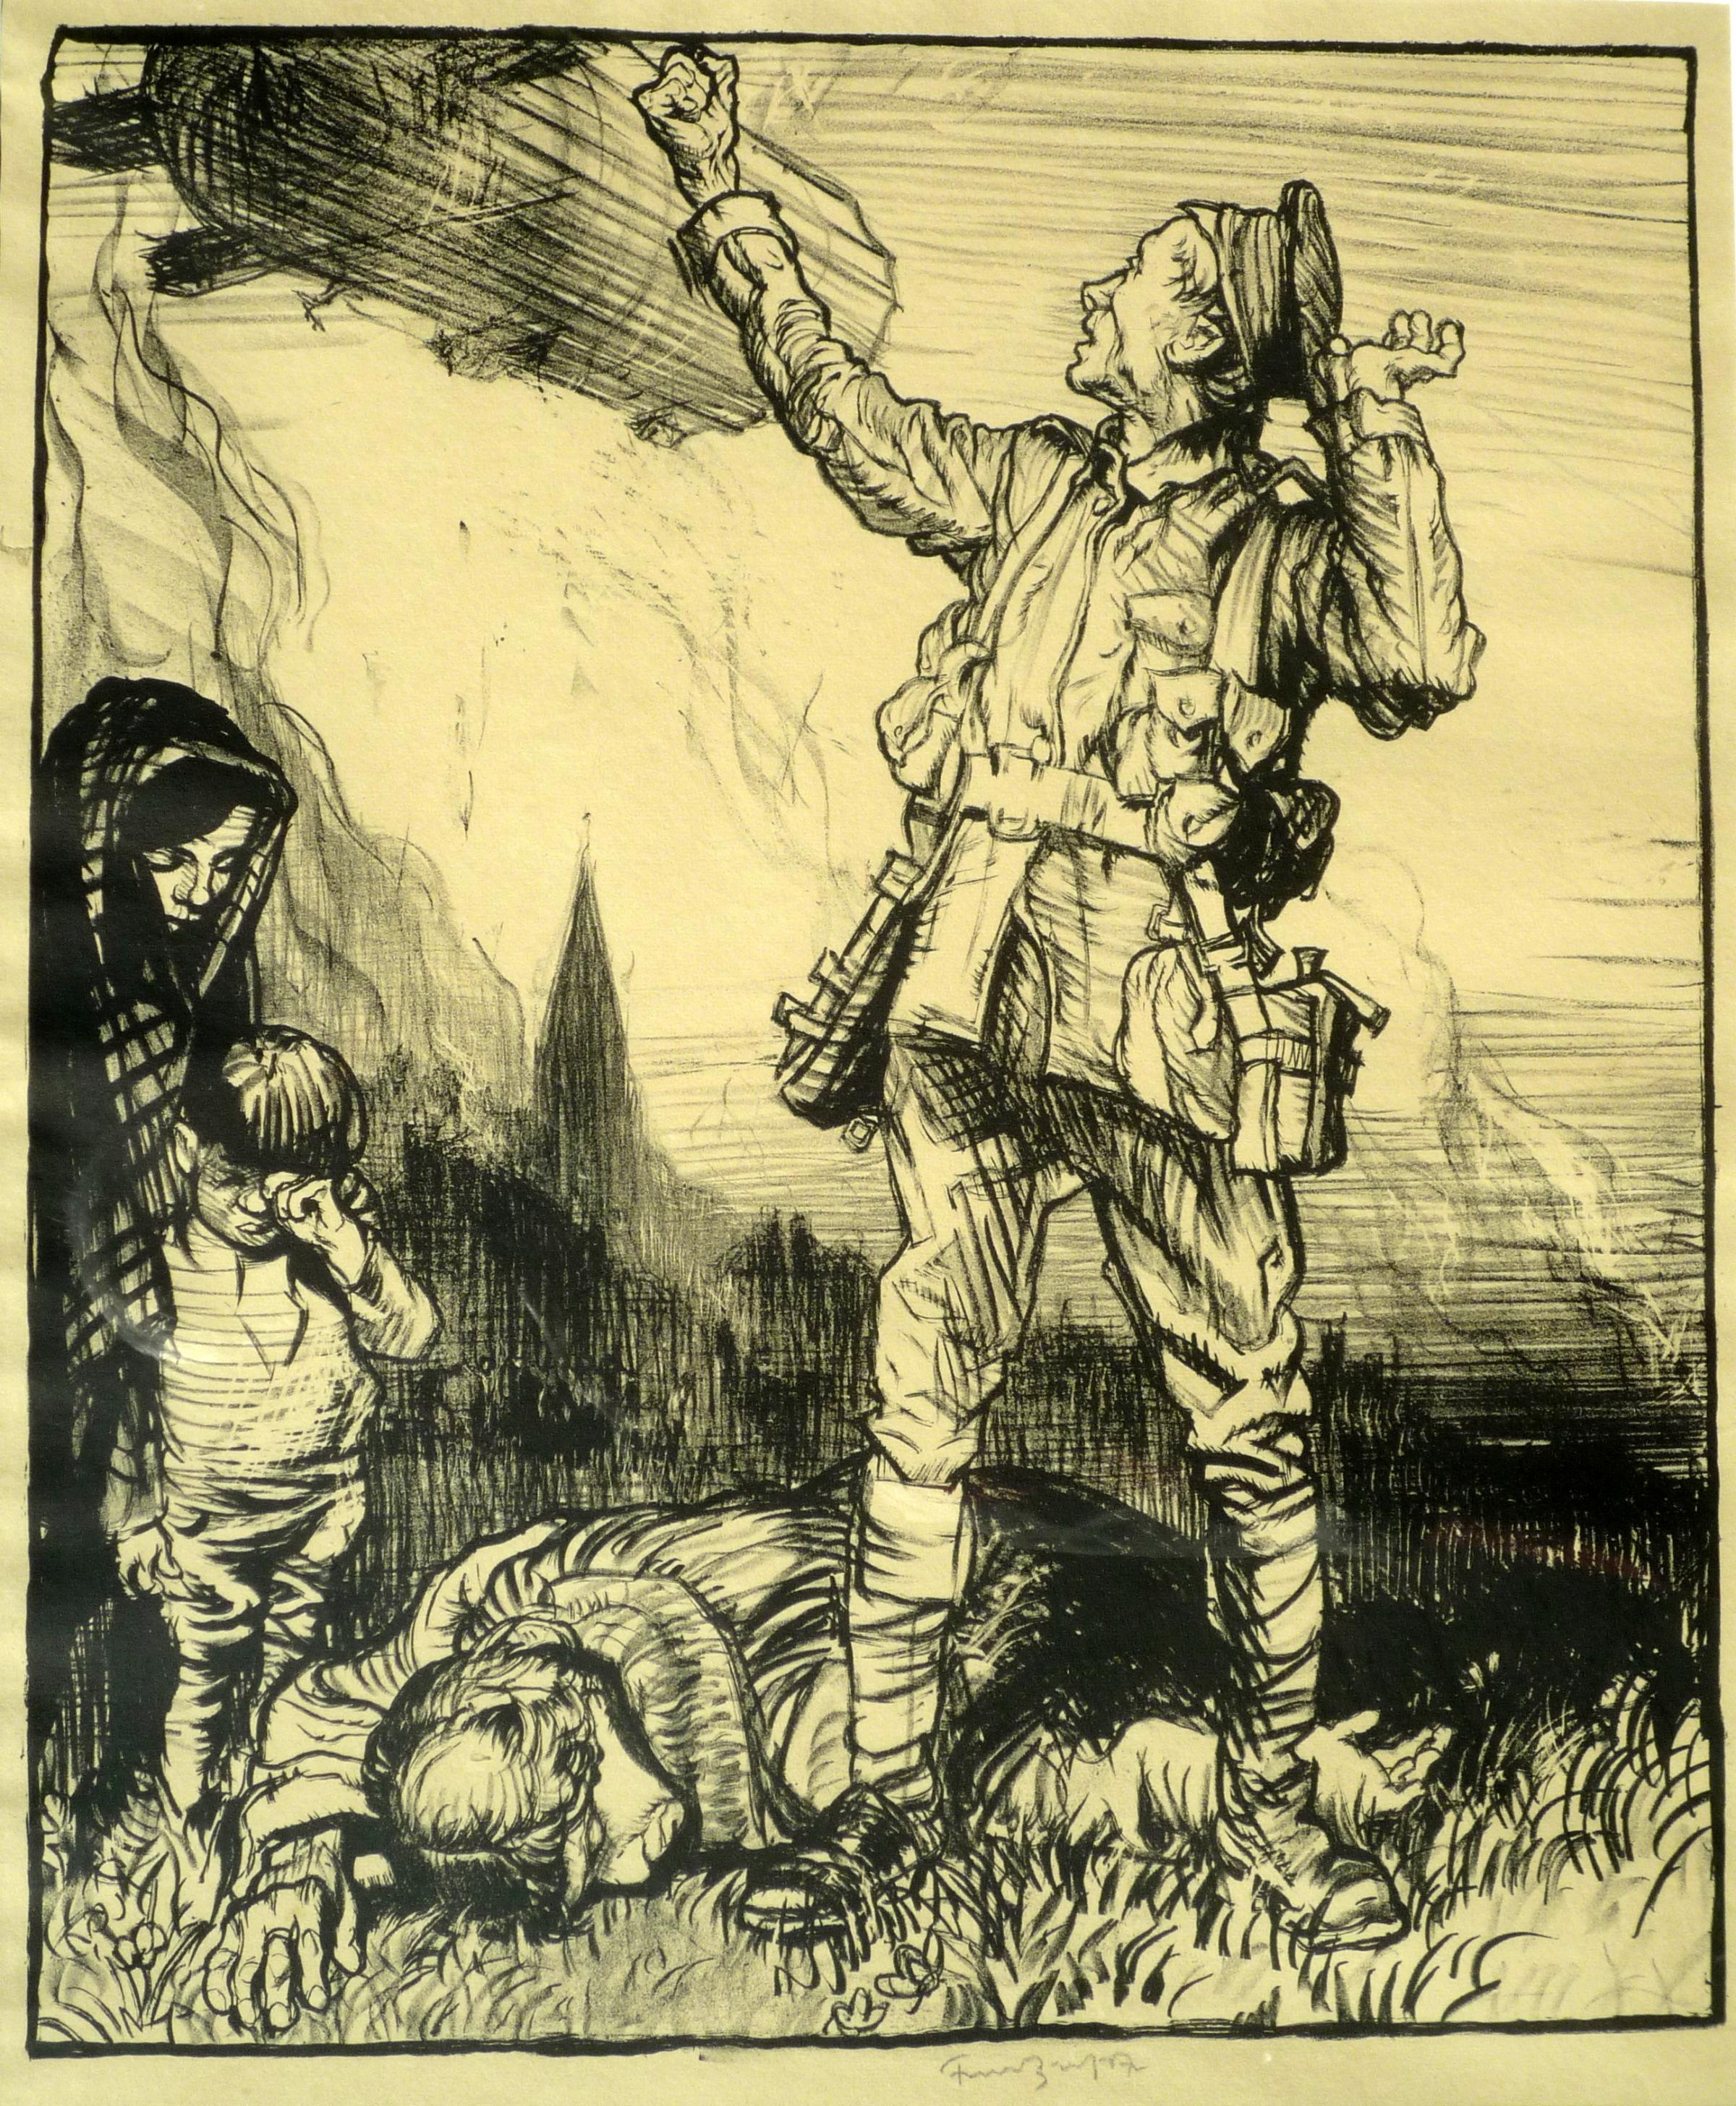 EXHIBITION: BraBrangwyn FW Vow of Vengeance 1914-1918 colour lithograph printed by The Avenue Press